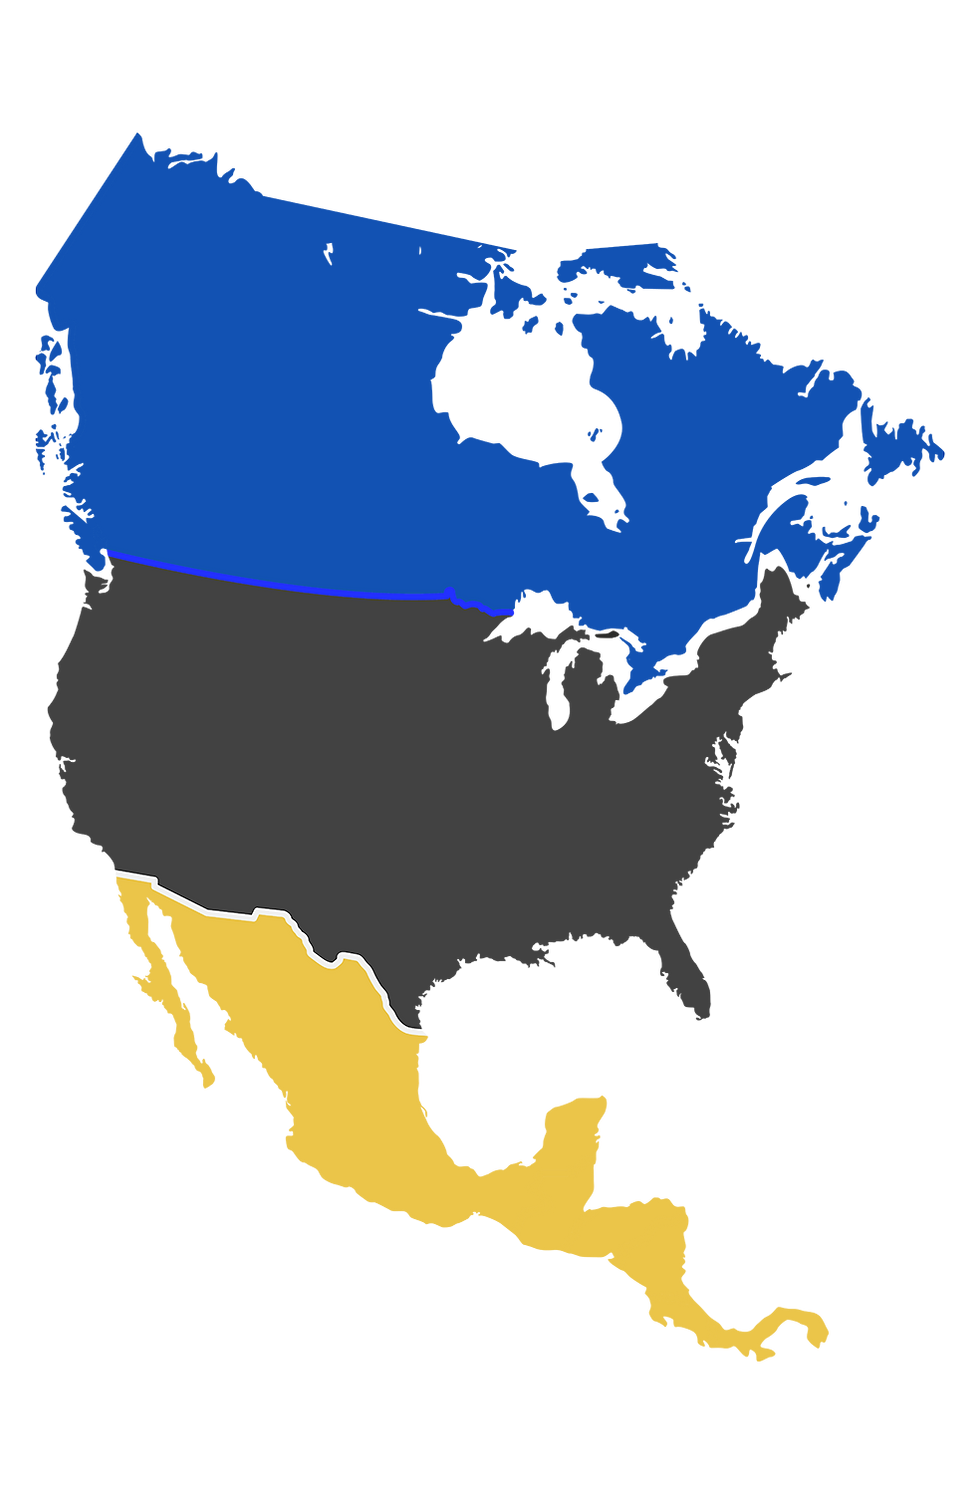 North America H&G Map-984x1500.png